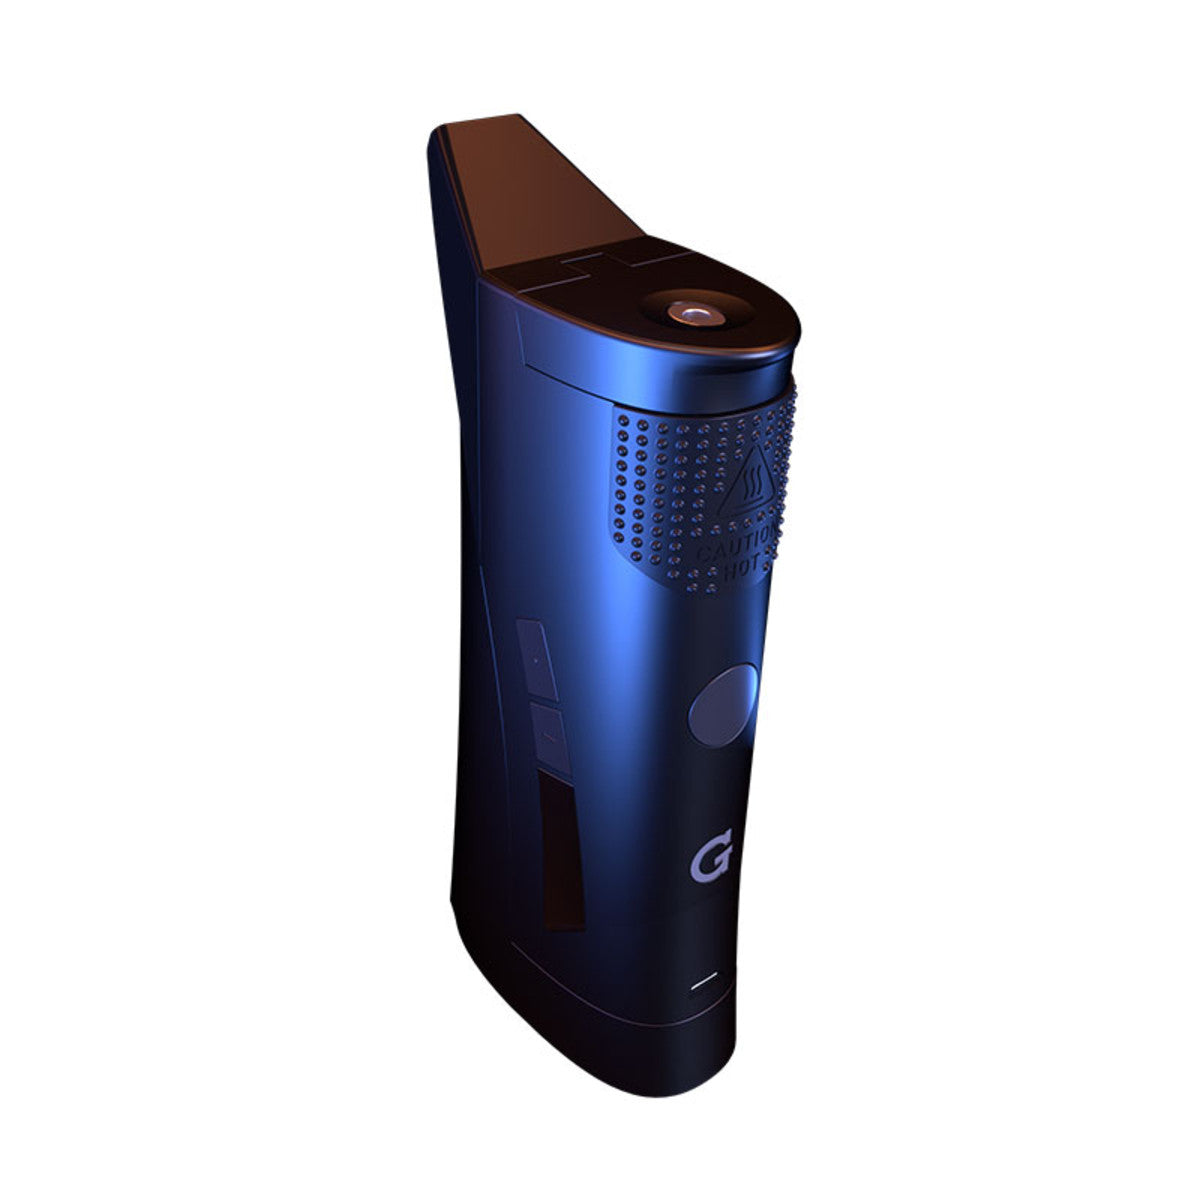 Grenco Science G Pen Roam Vaporizer - 360 Alternative